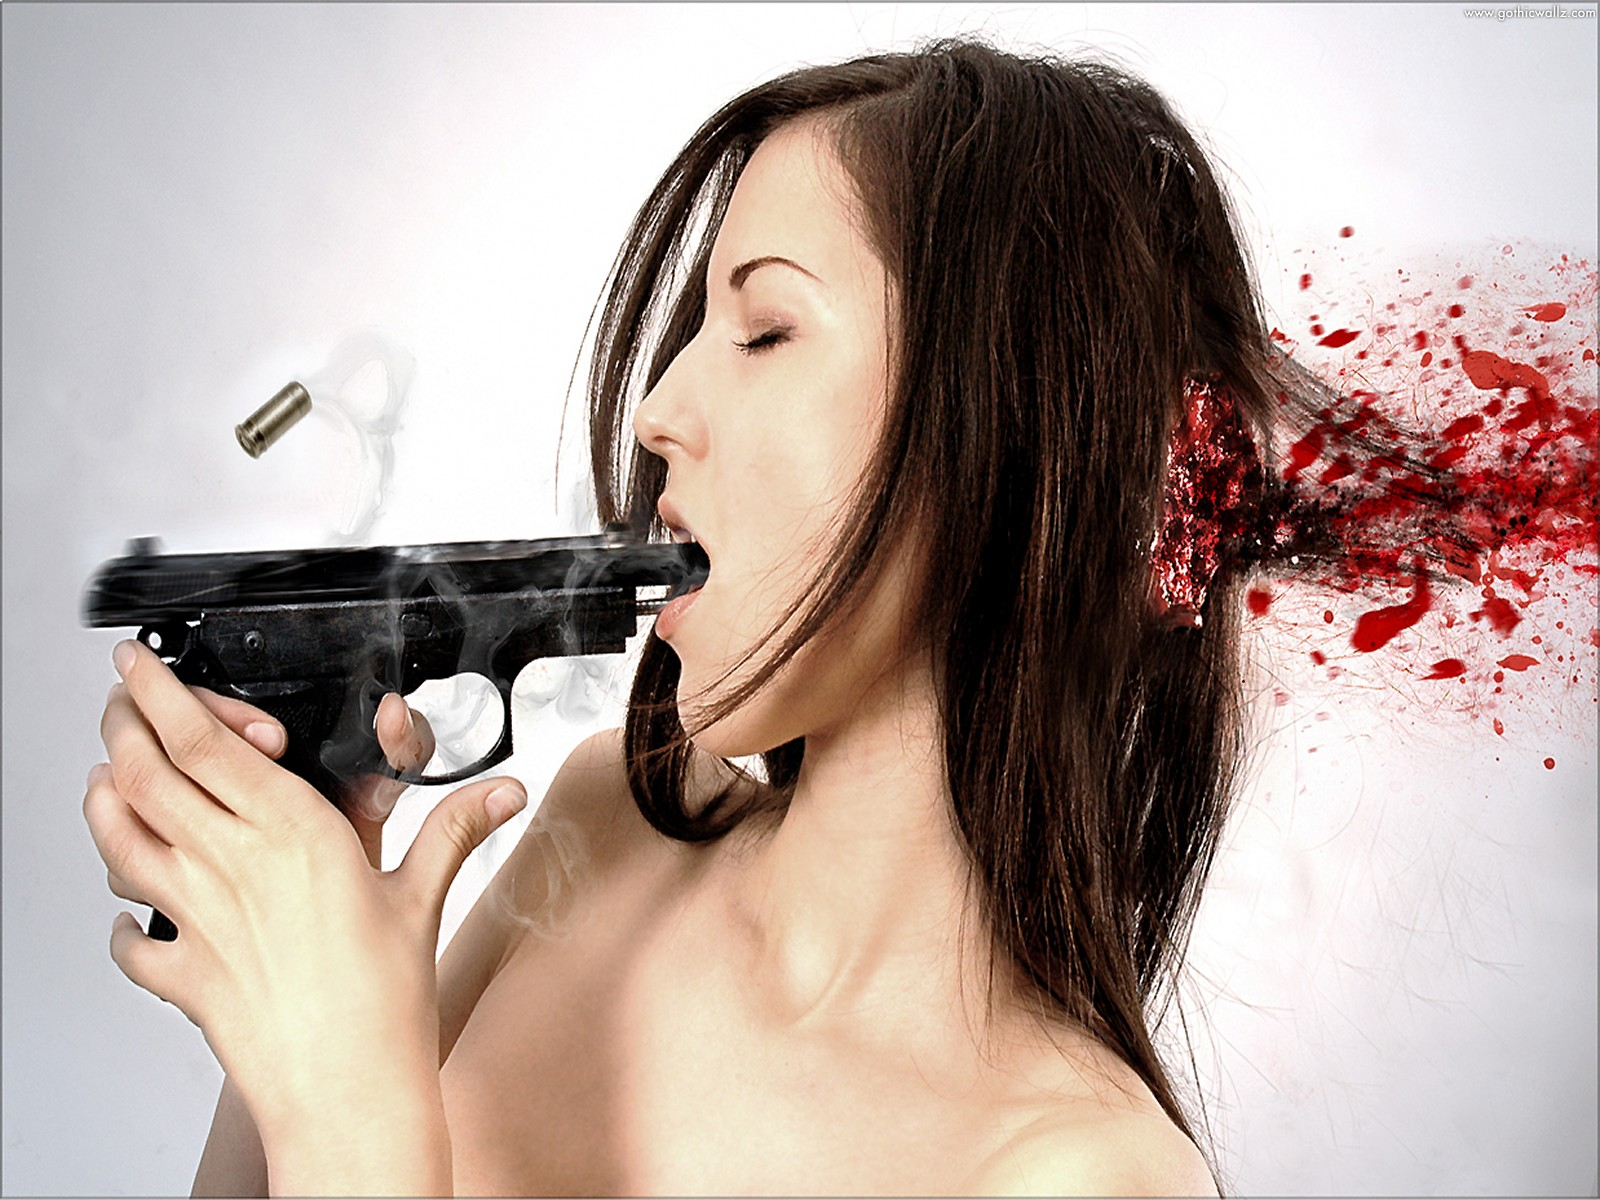 Blonde Shot in Head | Dark Gothic Wallpaper Download